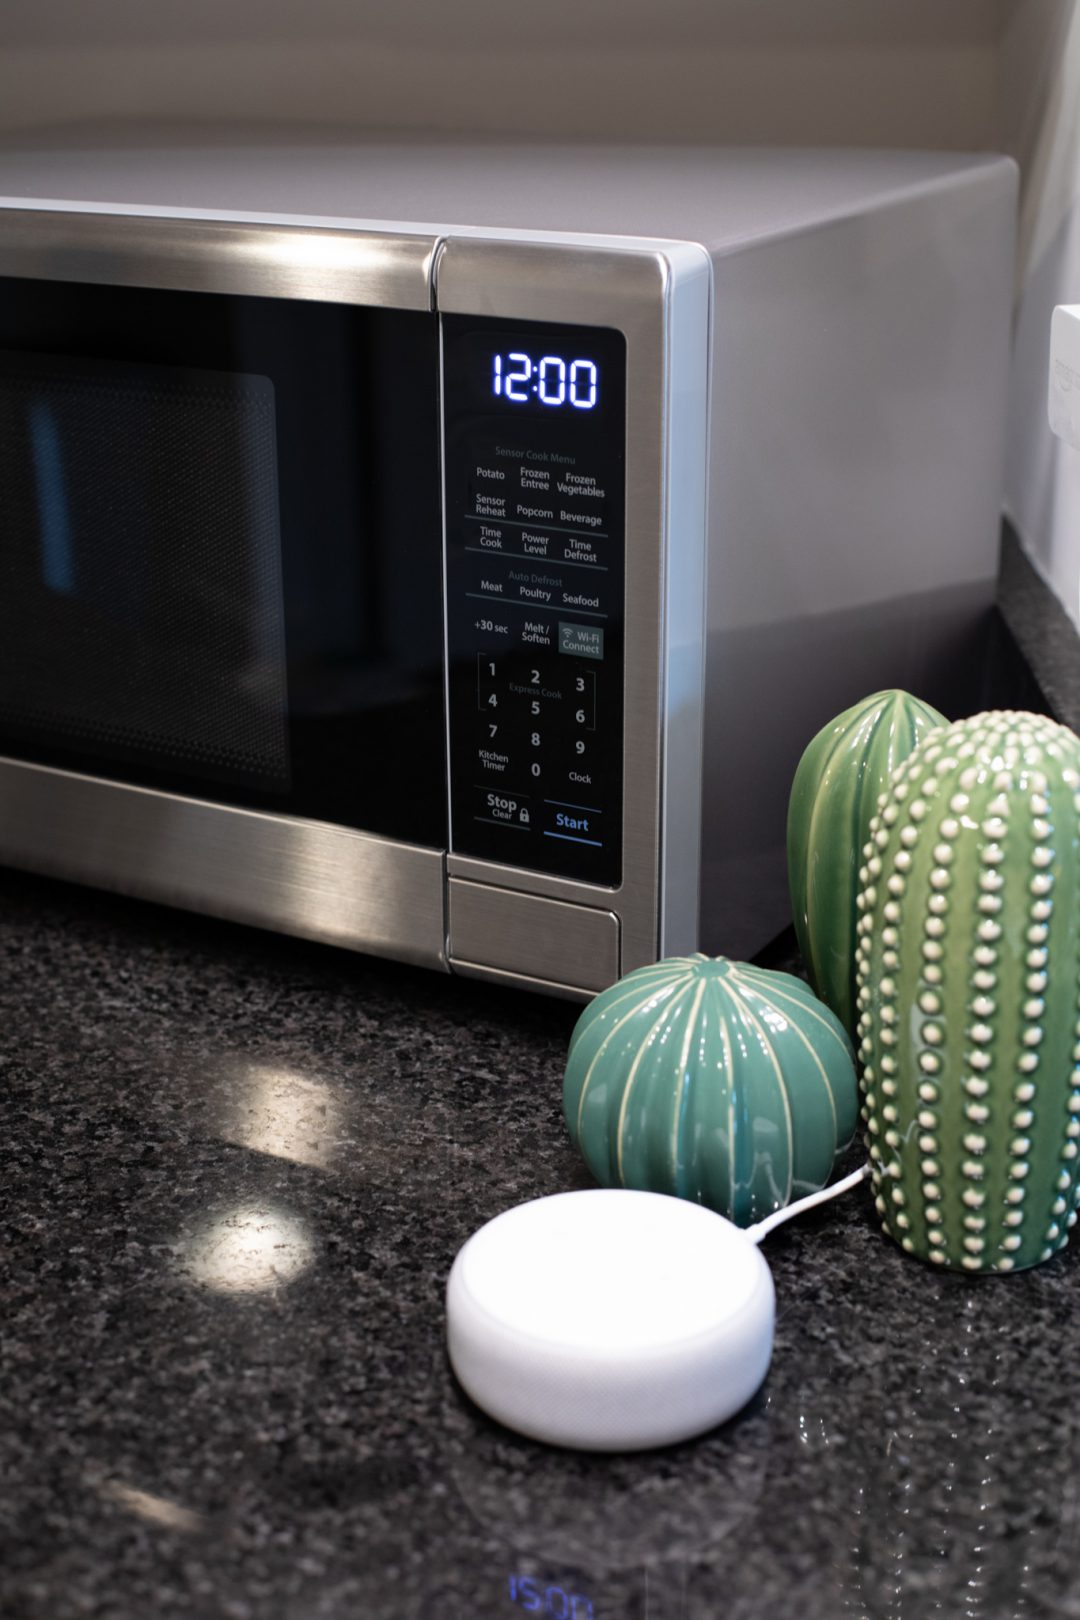 Sharp Smart countertop microwave oven on a kitchen countertop with an Amazon Echo